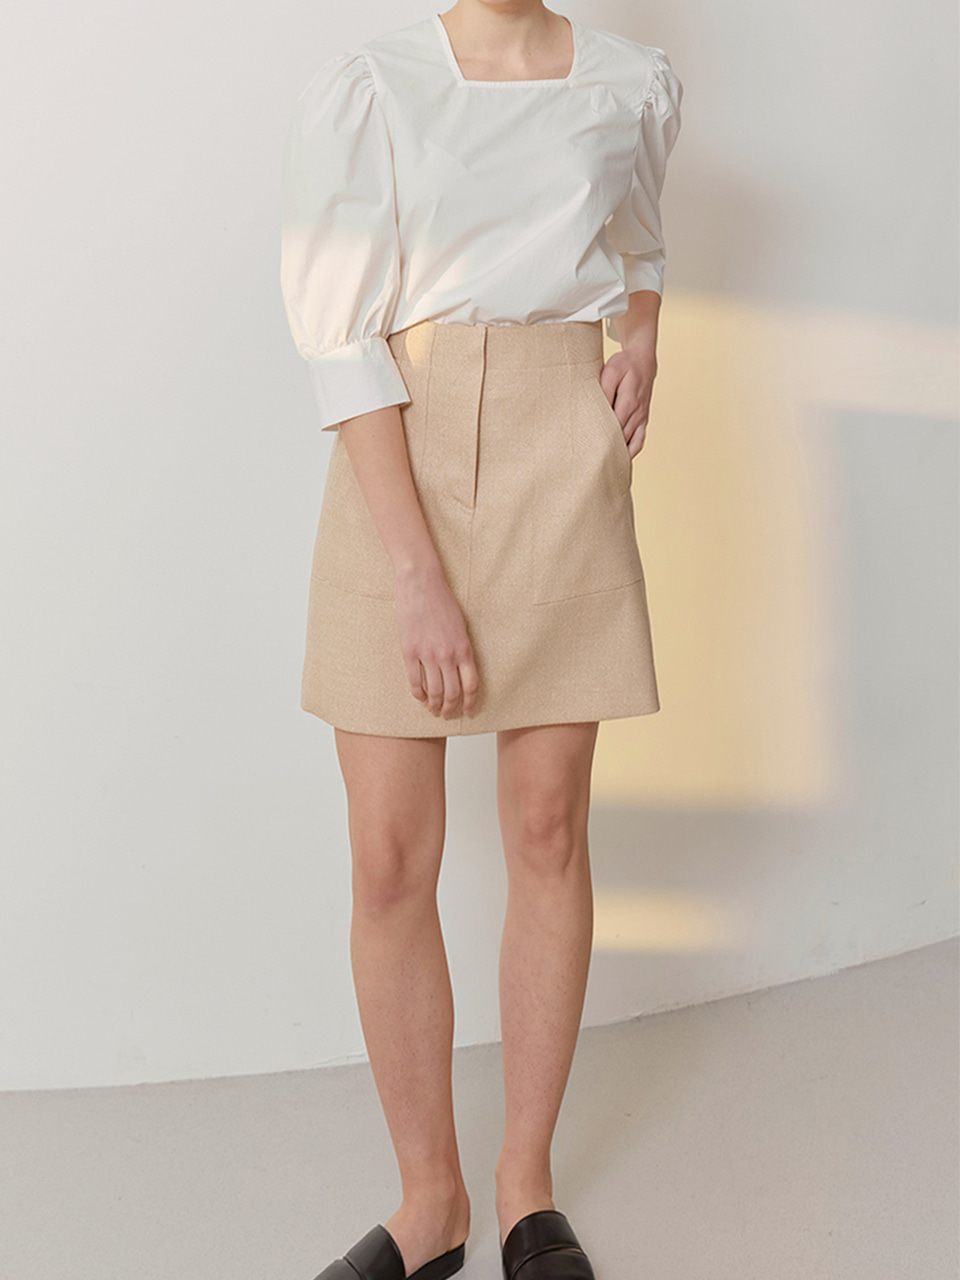 ISA_High Waisted Mini Skirts_Beige